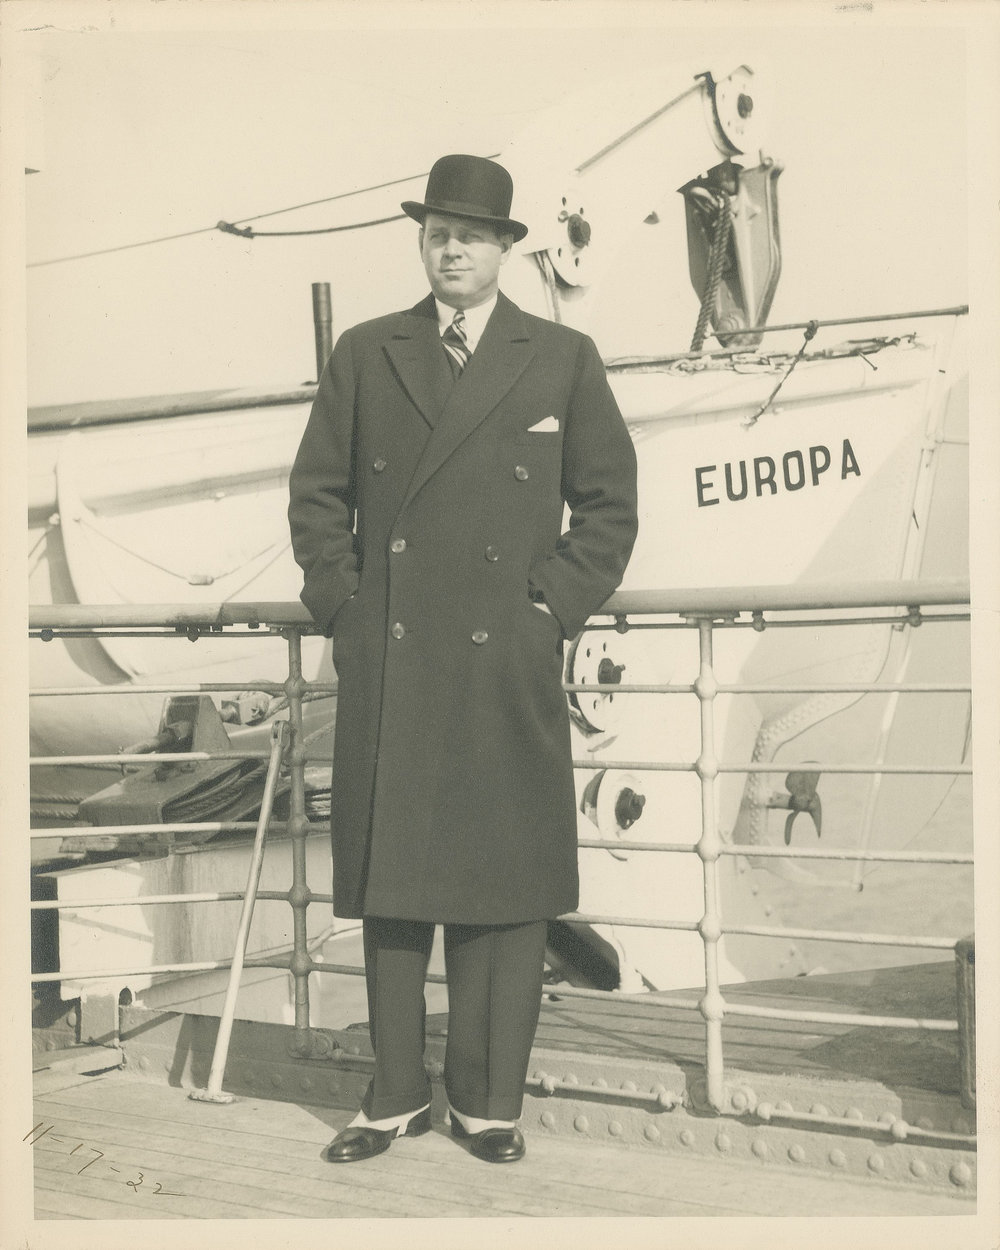 The dapper young designer Harley Earl sailing to Europe in 1932 for the annual auto shows